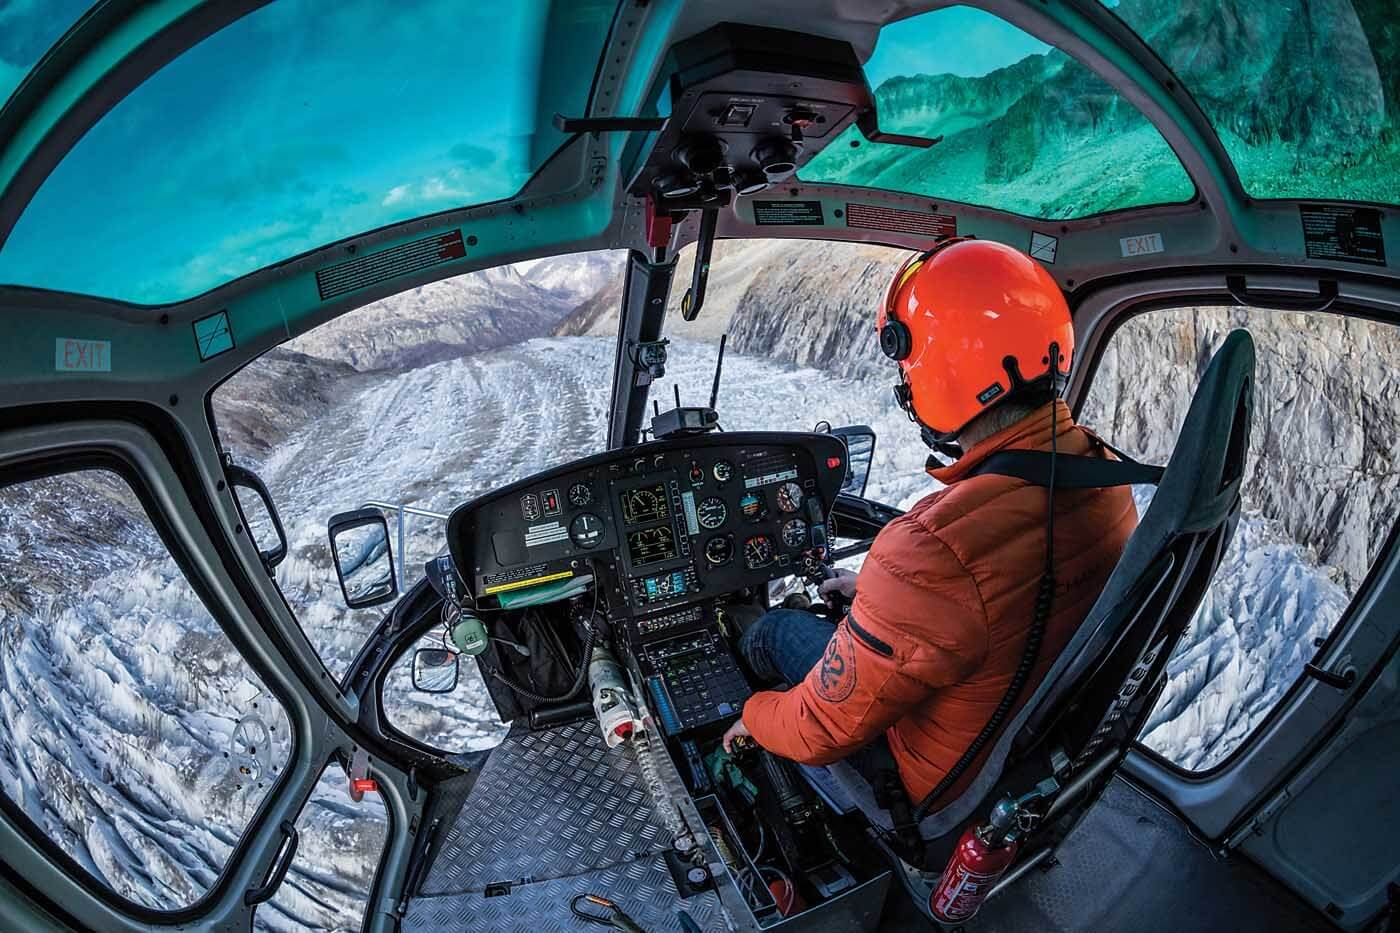 For many years, flight data monitoring systems were only practical for large aircraft, but FDM equipment for light helicopters has now been available for over a decade. Even so, many helicopter operators have been reluctant to implement FDM. Julien Sollberger Photo